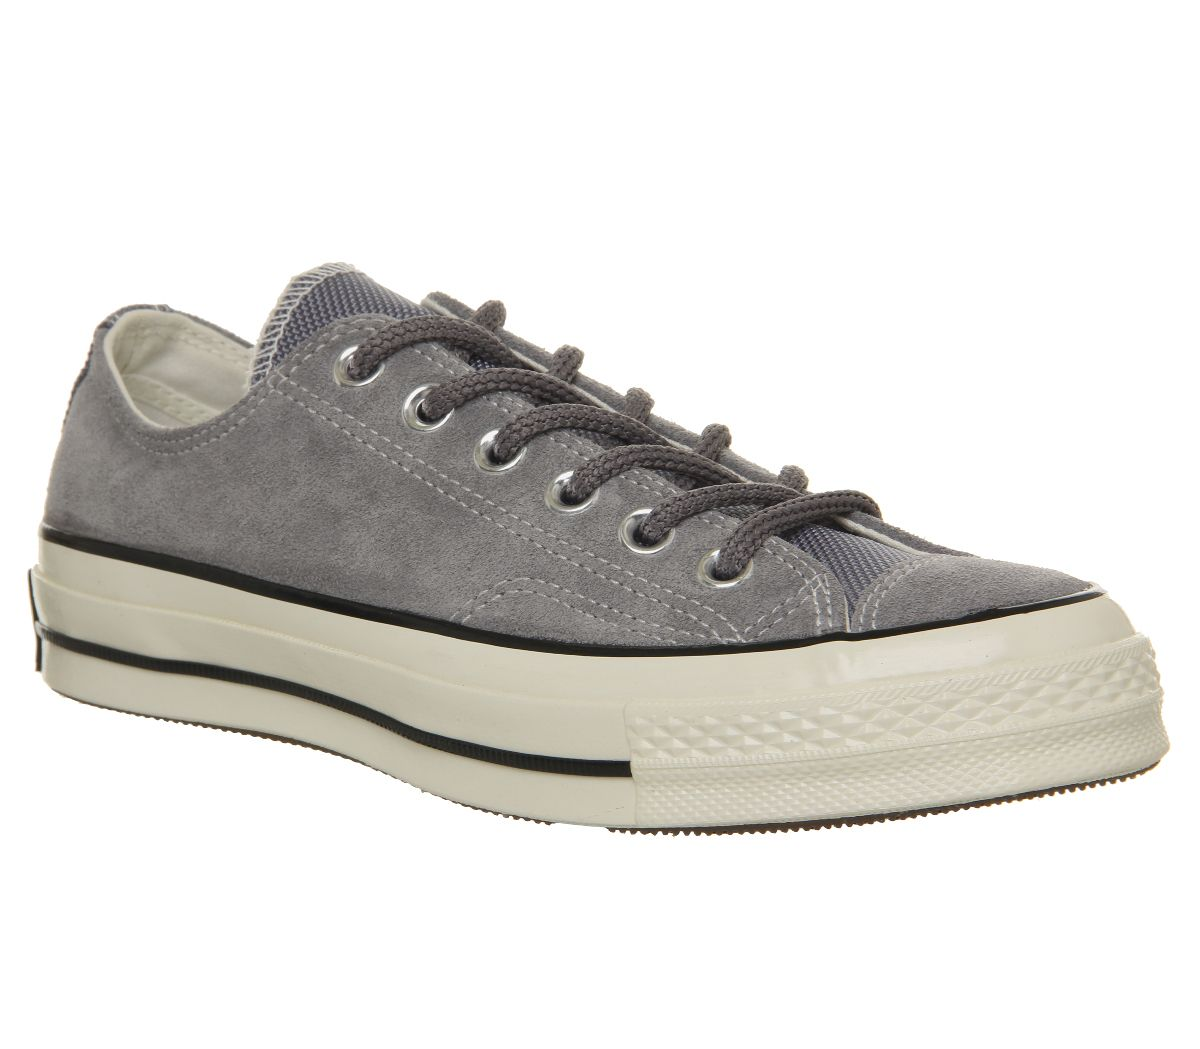 797908b62 Converse All Star Ox 70 s Trainers Mason Black Egret - His trainers